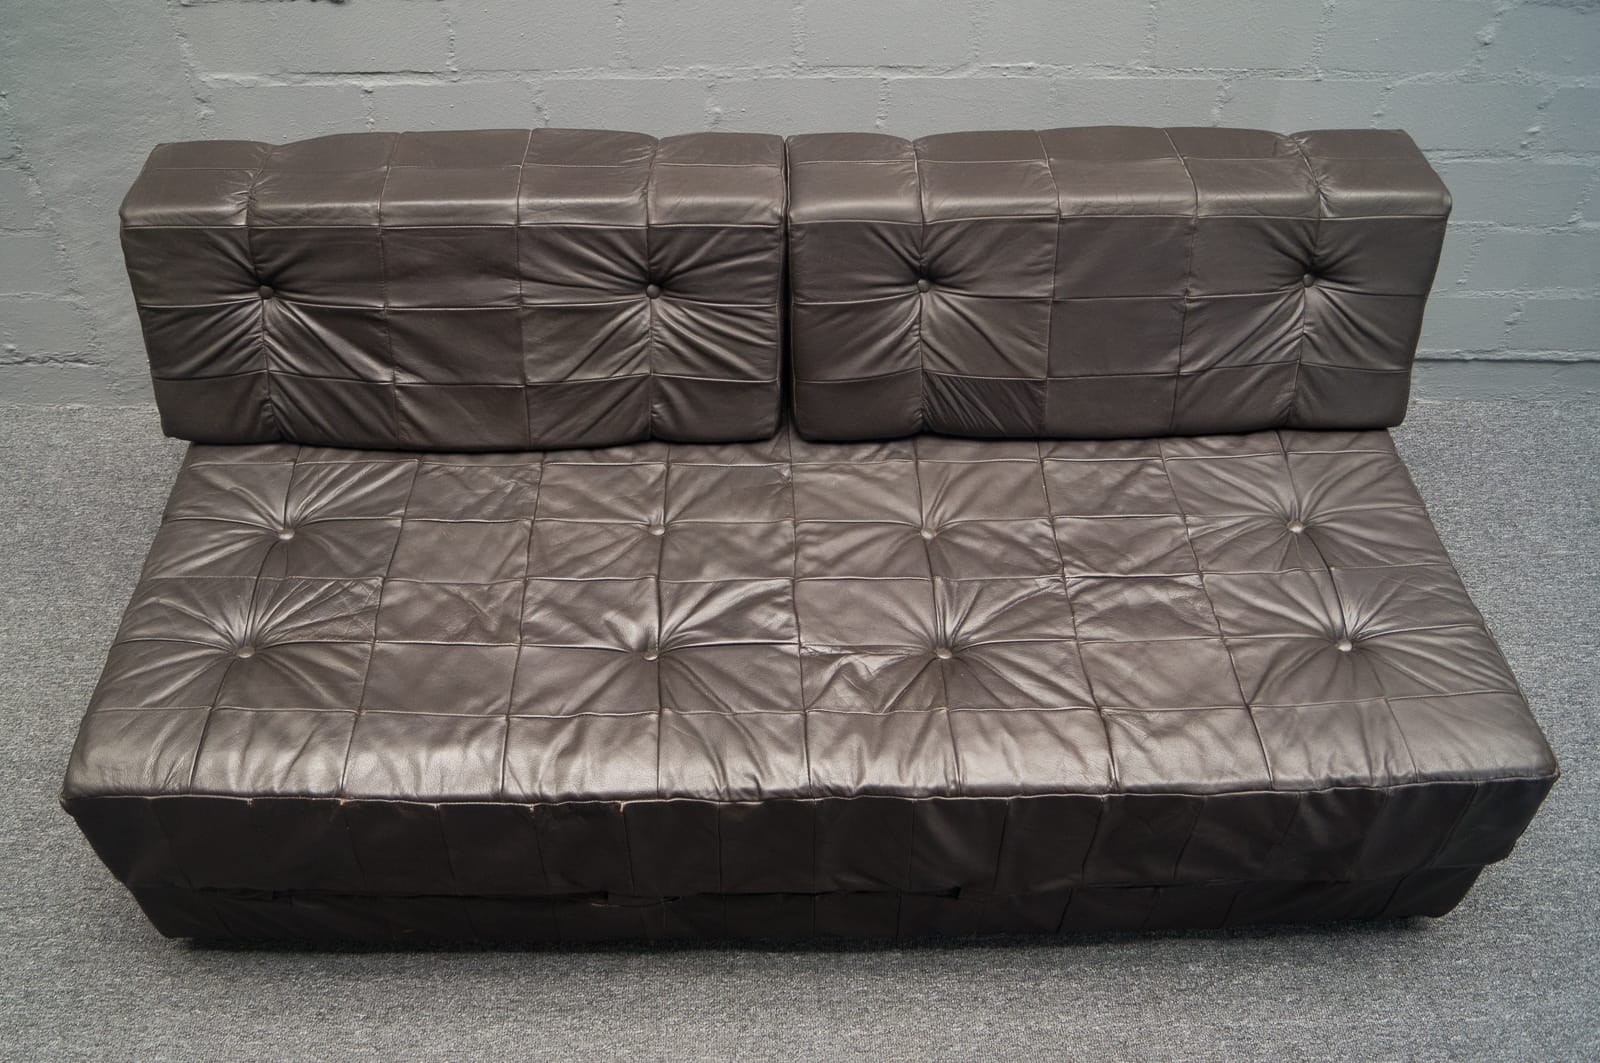 stilraum nuremberg sofa 2 armchairs leather patchwork. Black Bedroom Furniture Sets. Home Design Ideas